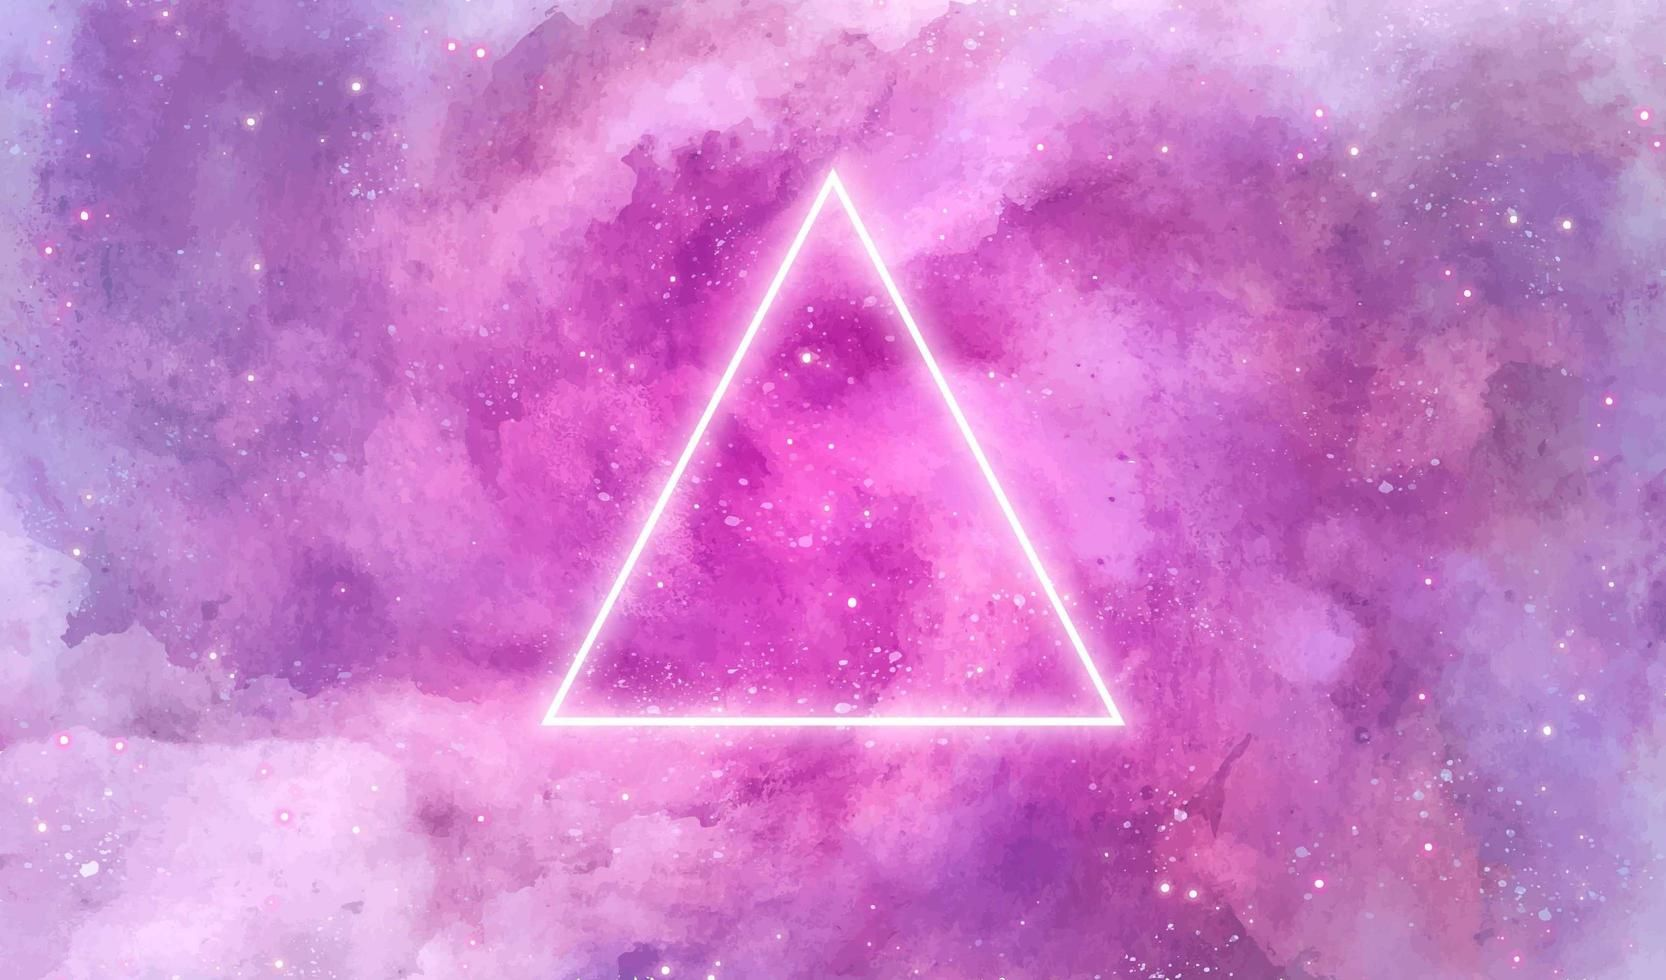 Galaxy Watercolor Texture With Neon Triangle In 2021 Watercolor Galaxy Galaxy Background Glowing Background